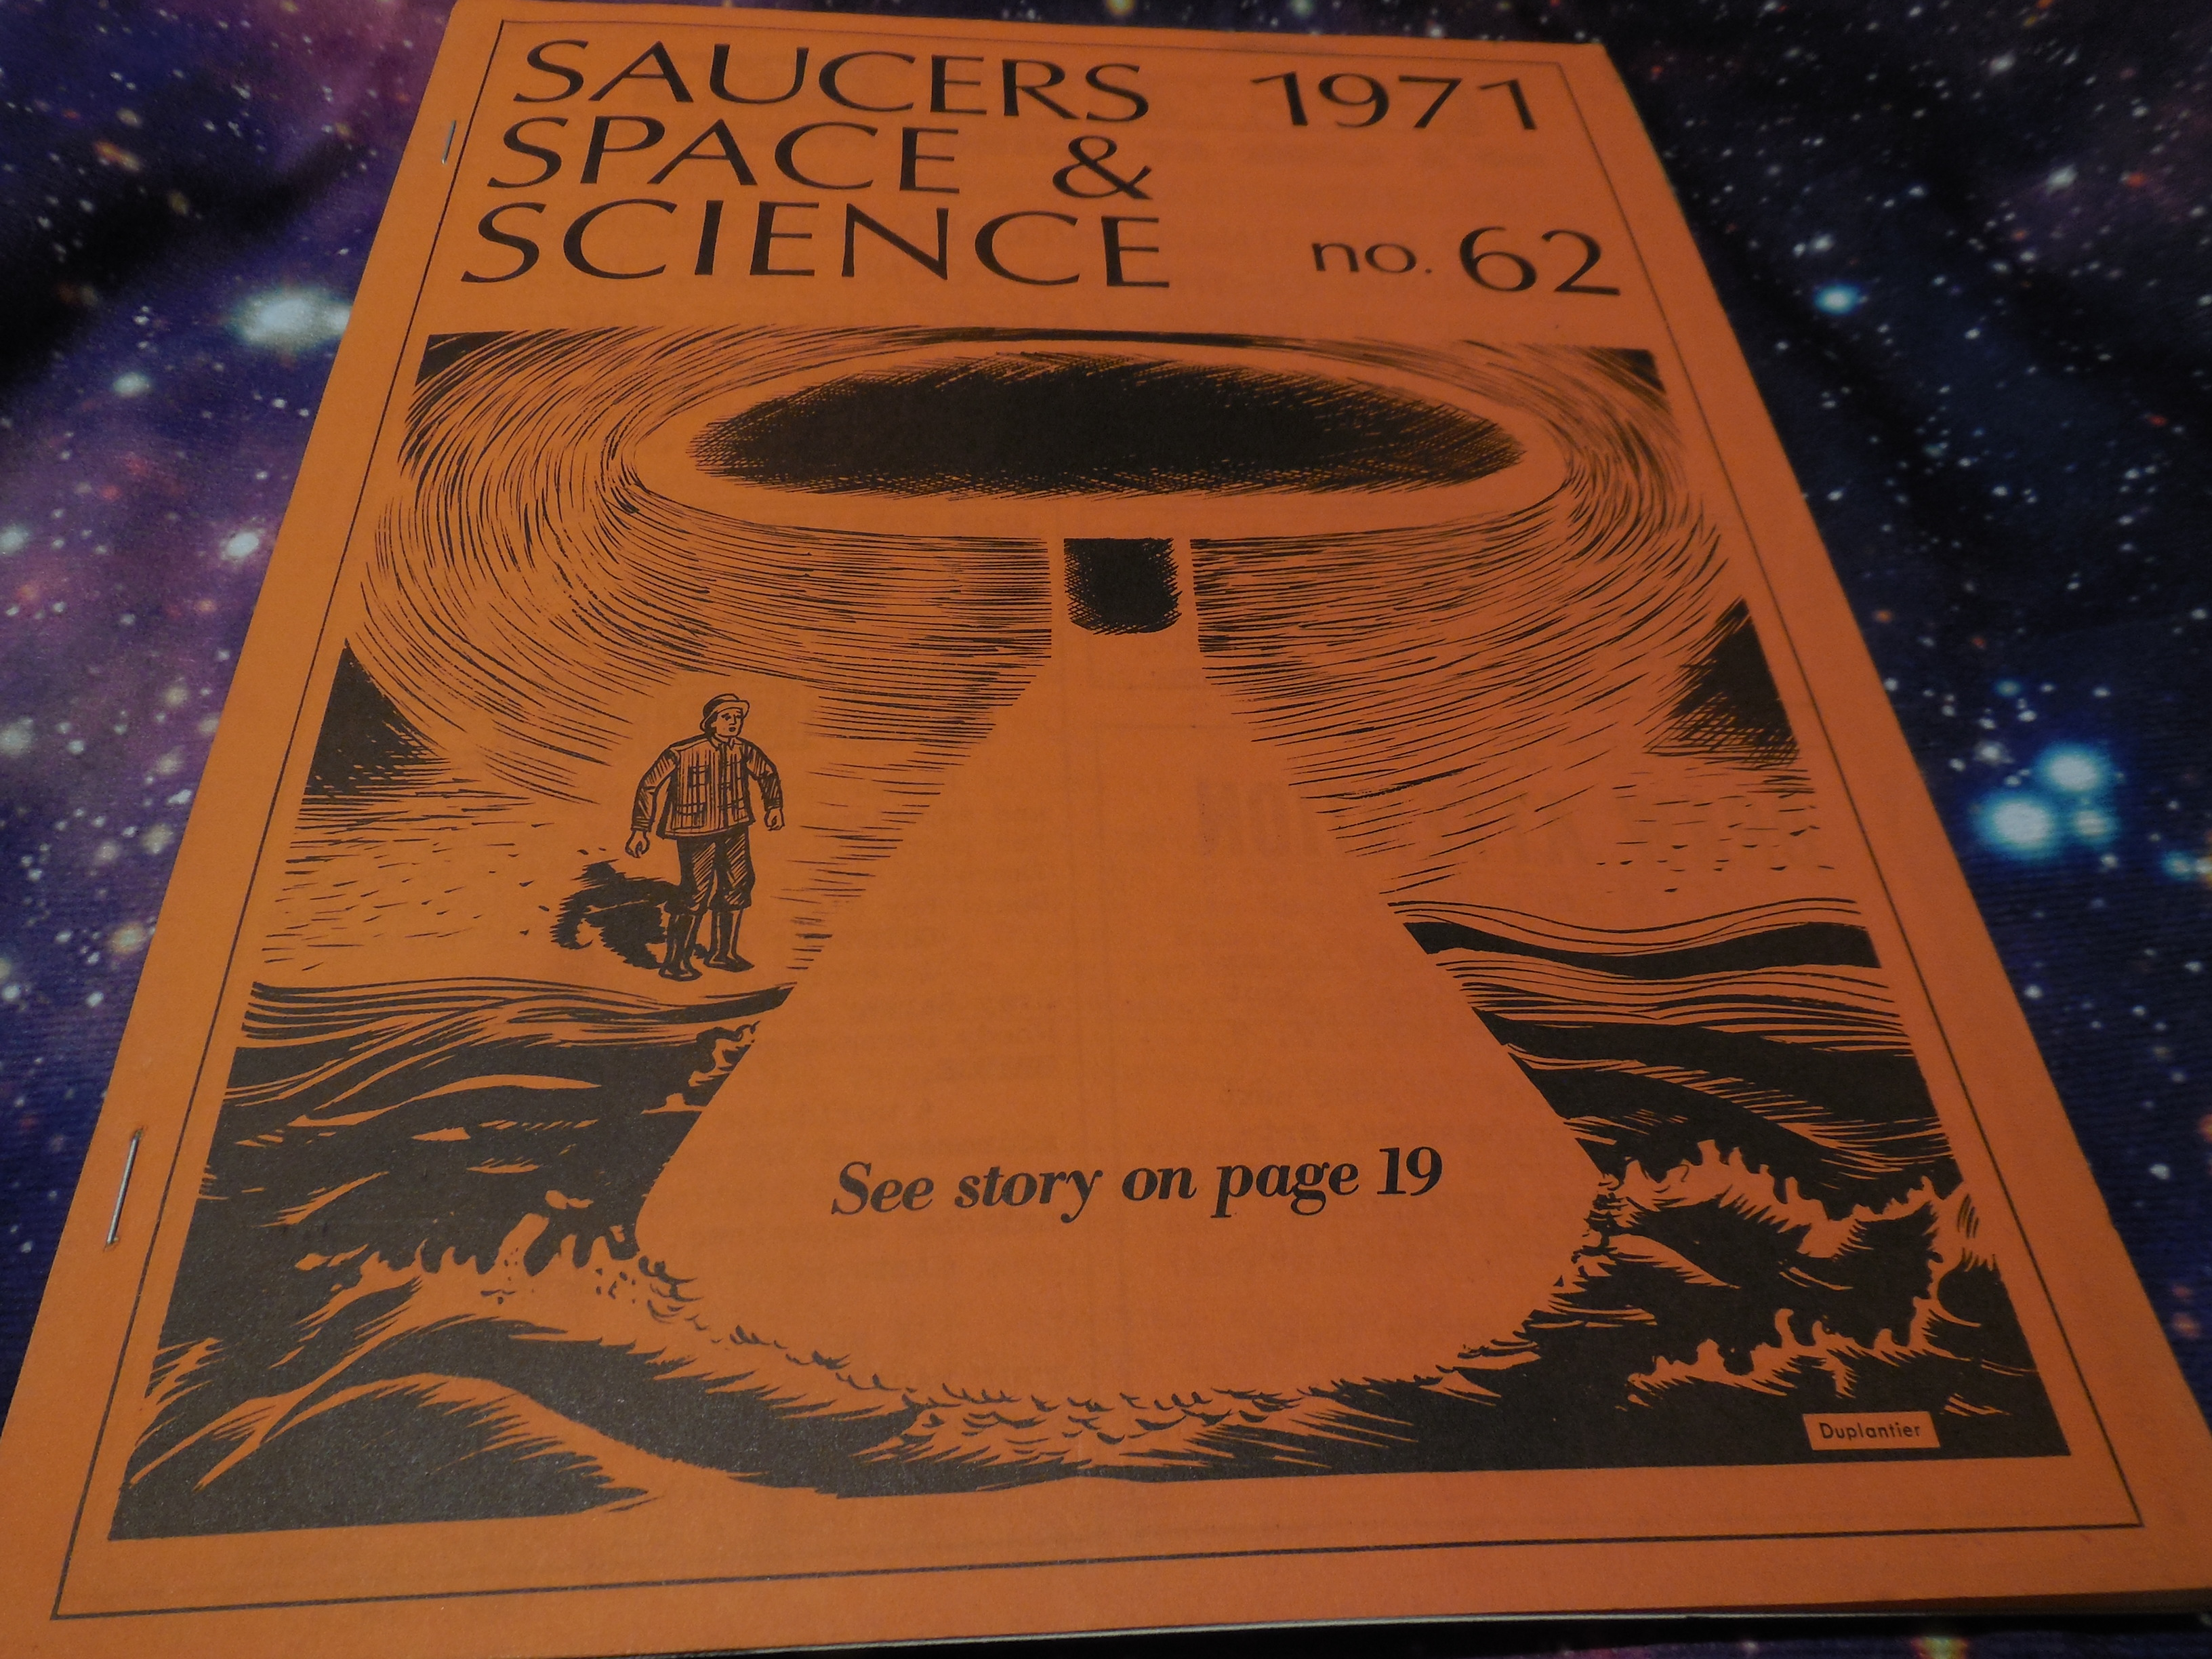 Image for Saucers, Space & Science, Issue No. 62, 1971